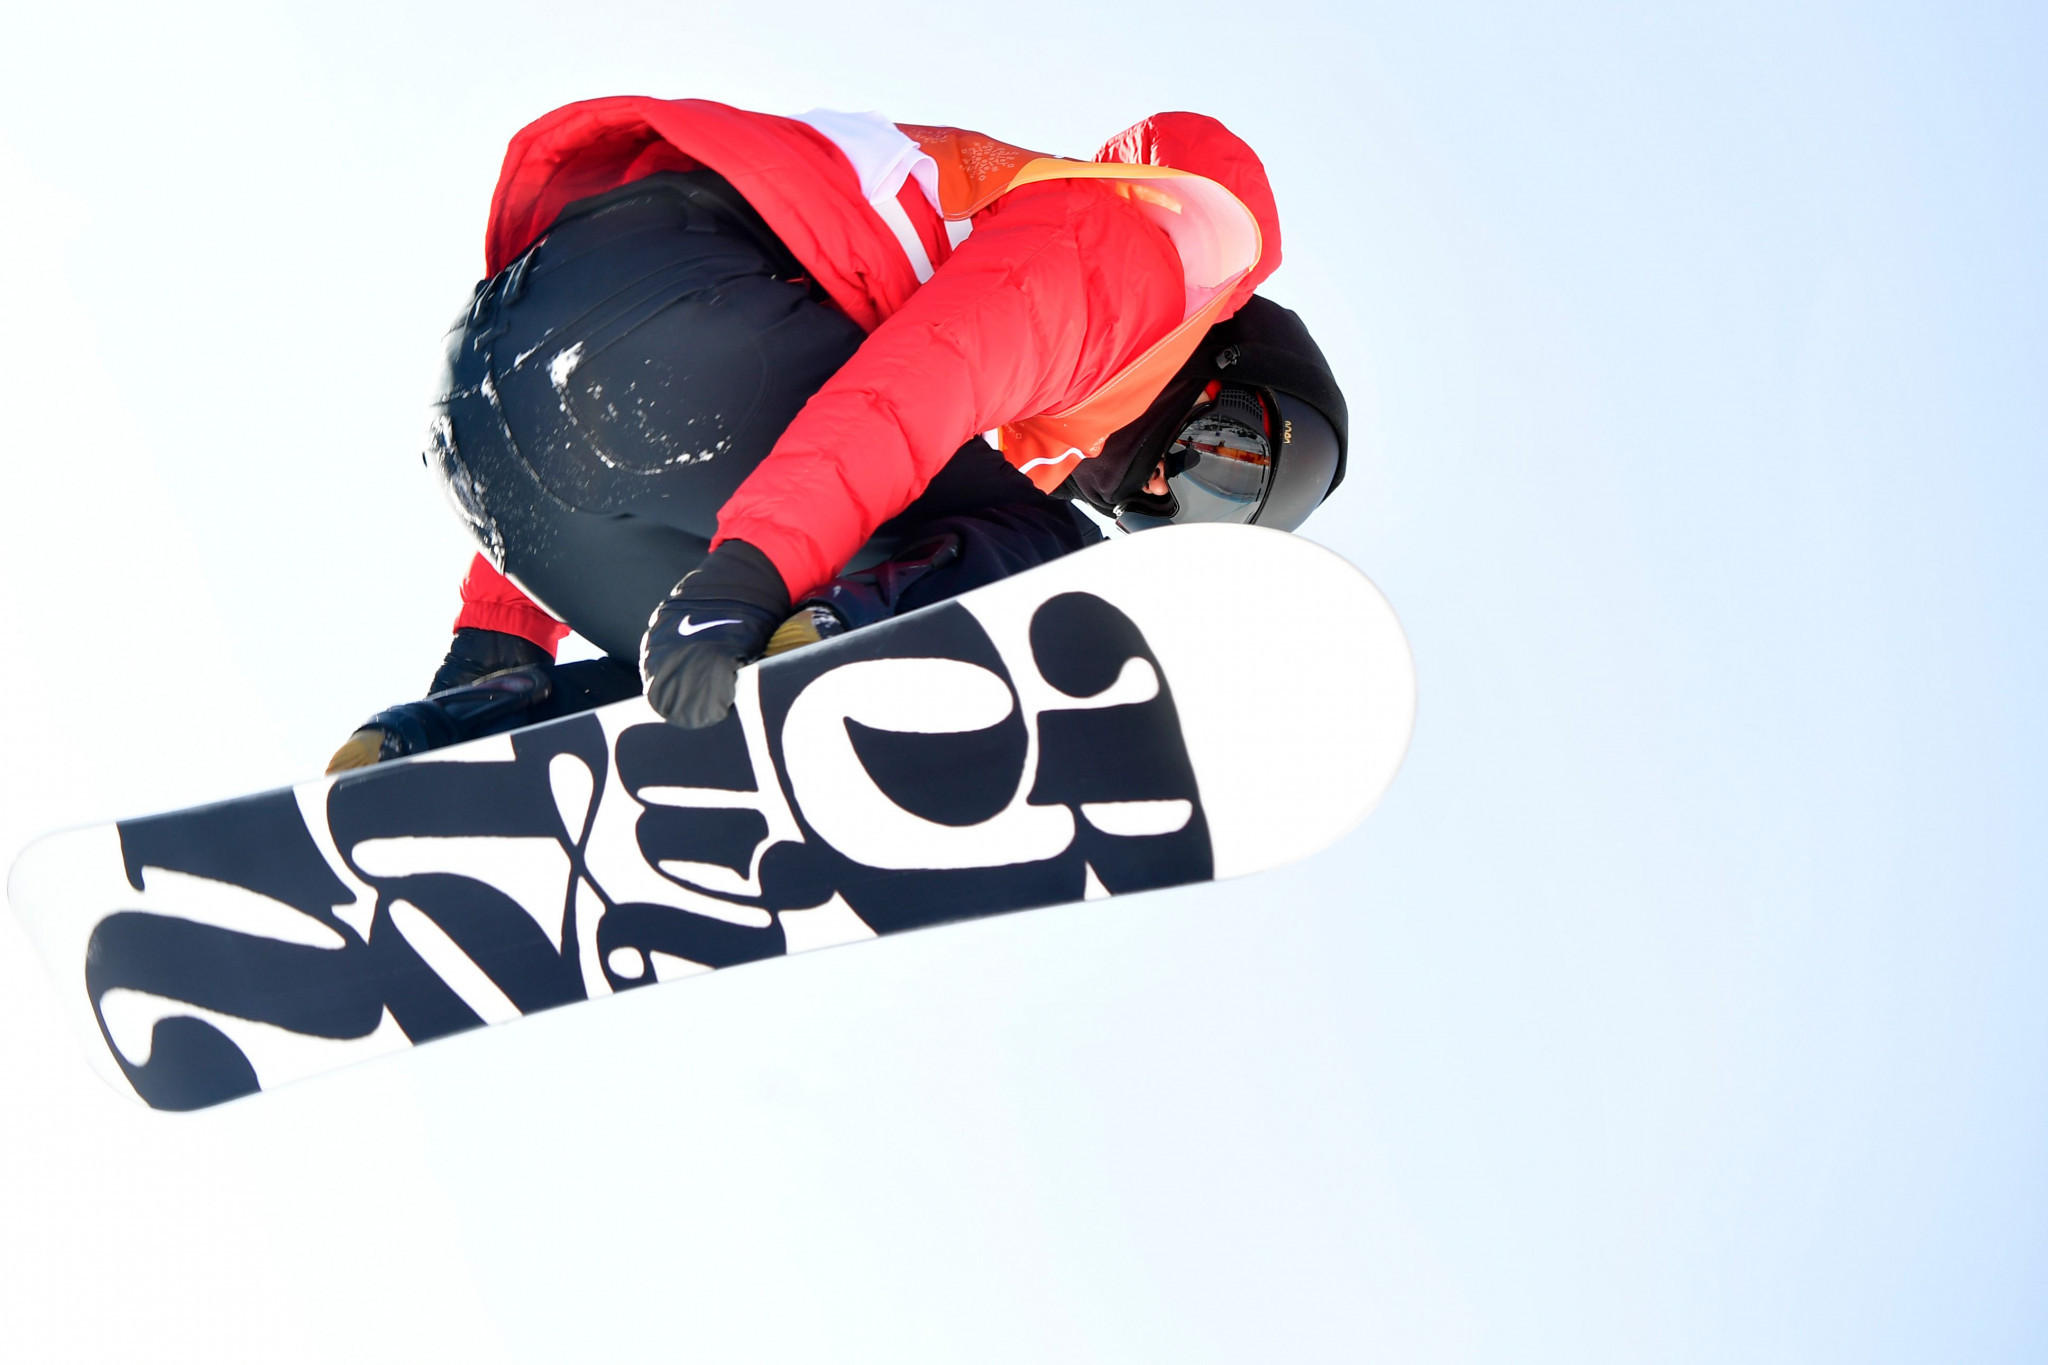 Cai wins Halfpipe World Cup gold on home snow